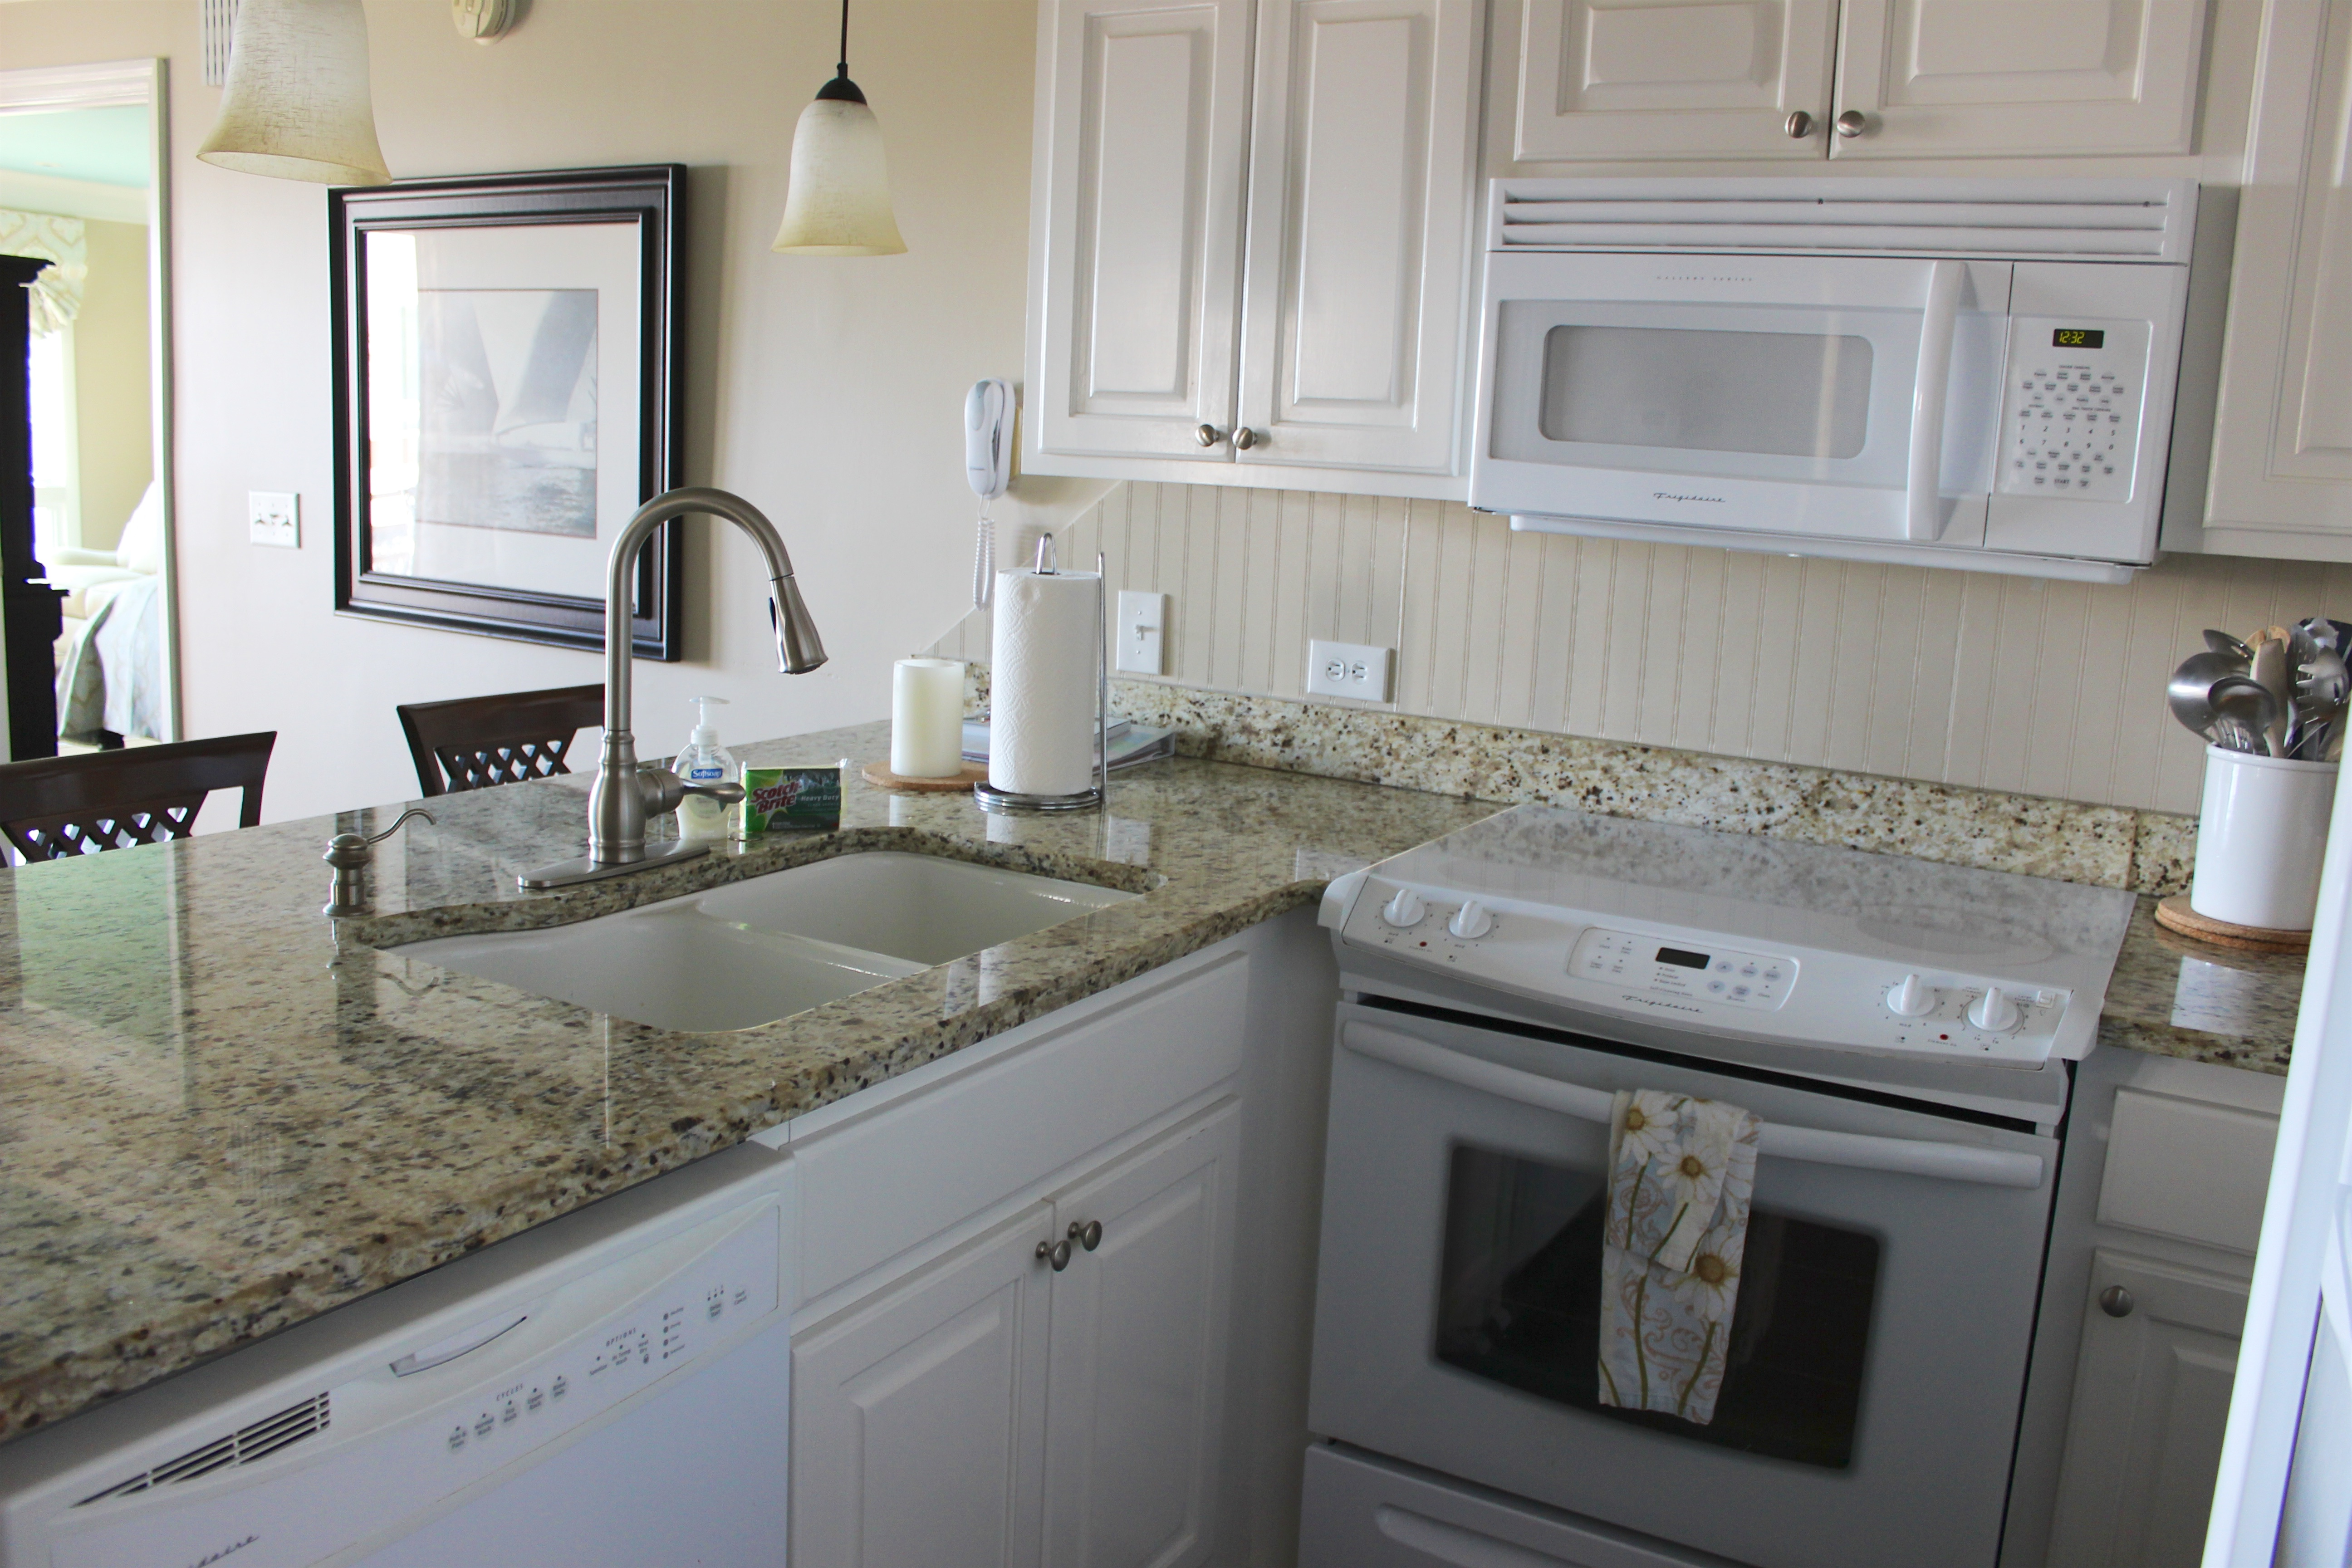 The kitchen features granite counters and has been beautifully updated.